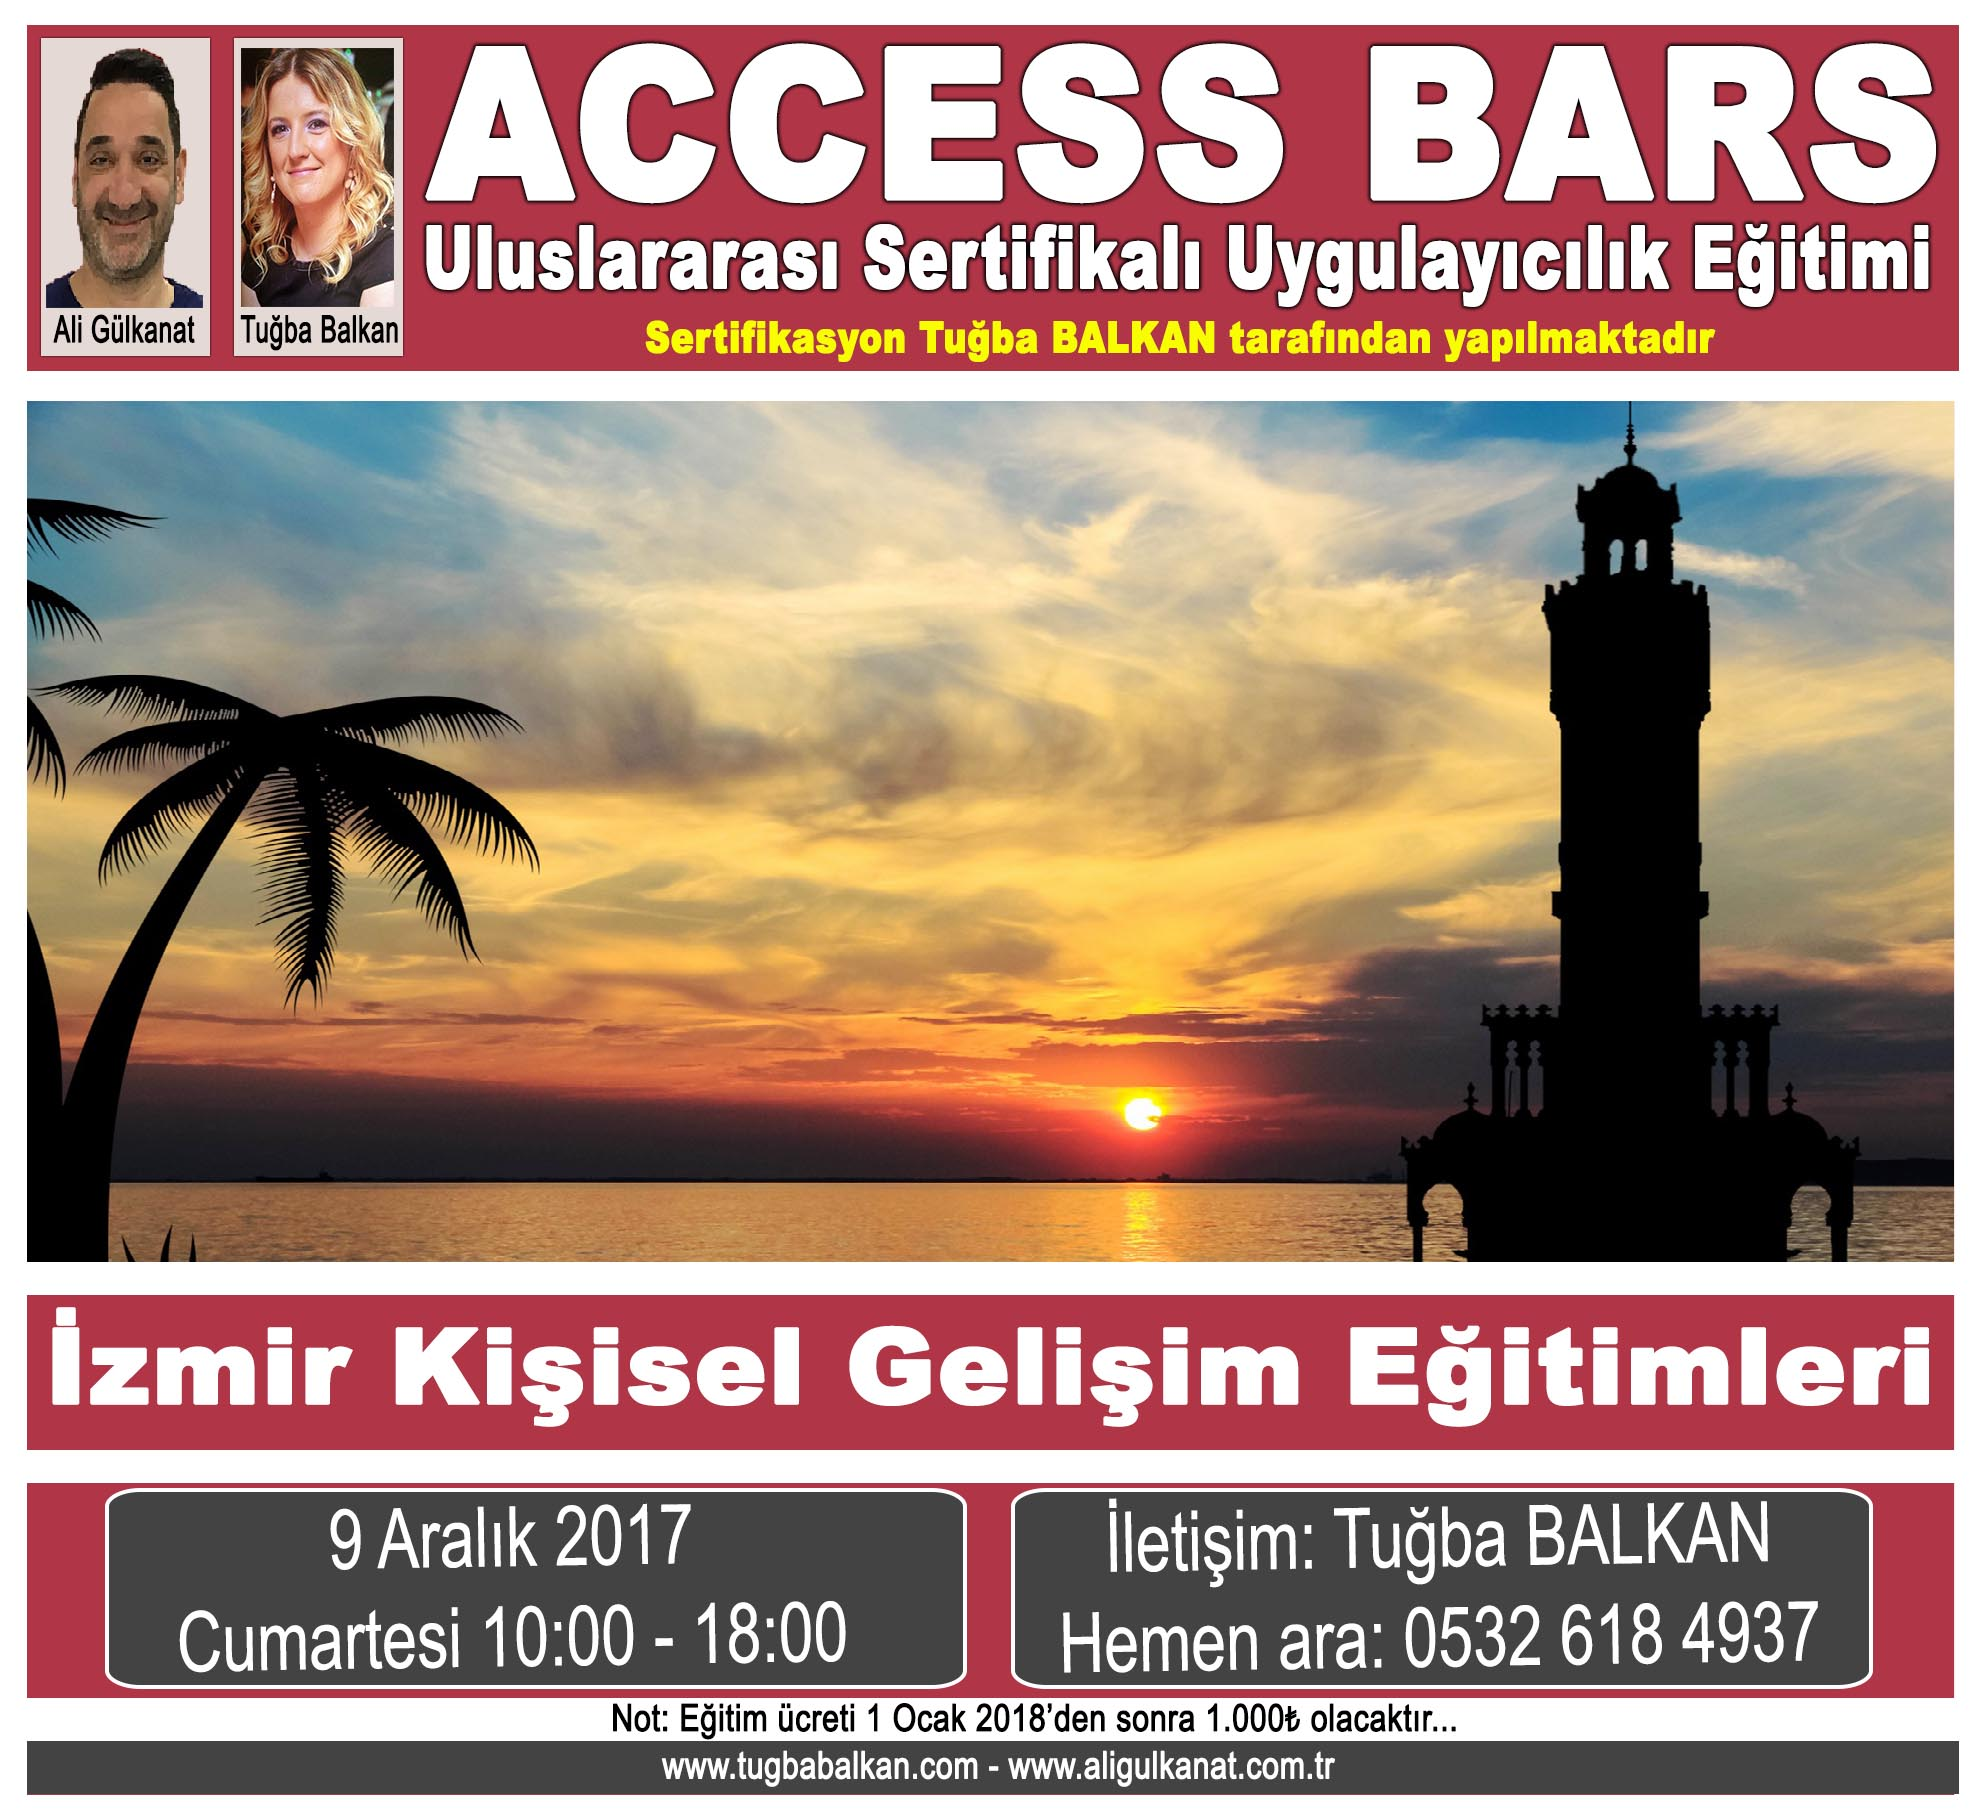 access bars pdf, access bars practitioner, access bars process, access bars prosesleri, access bars reiki, access bars seans, access bars fiyatı, access bars forum, access bars görseller, access bars görselleri,